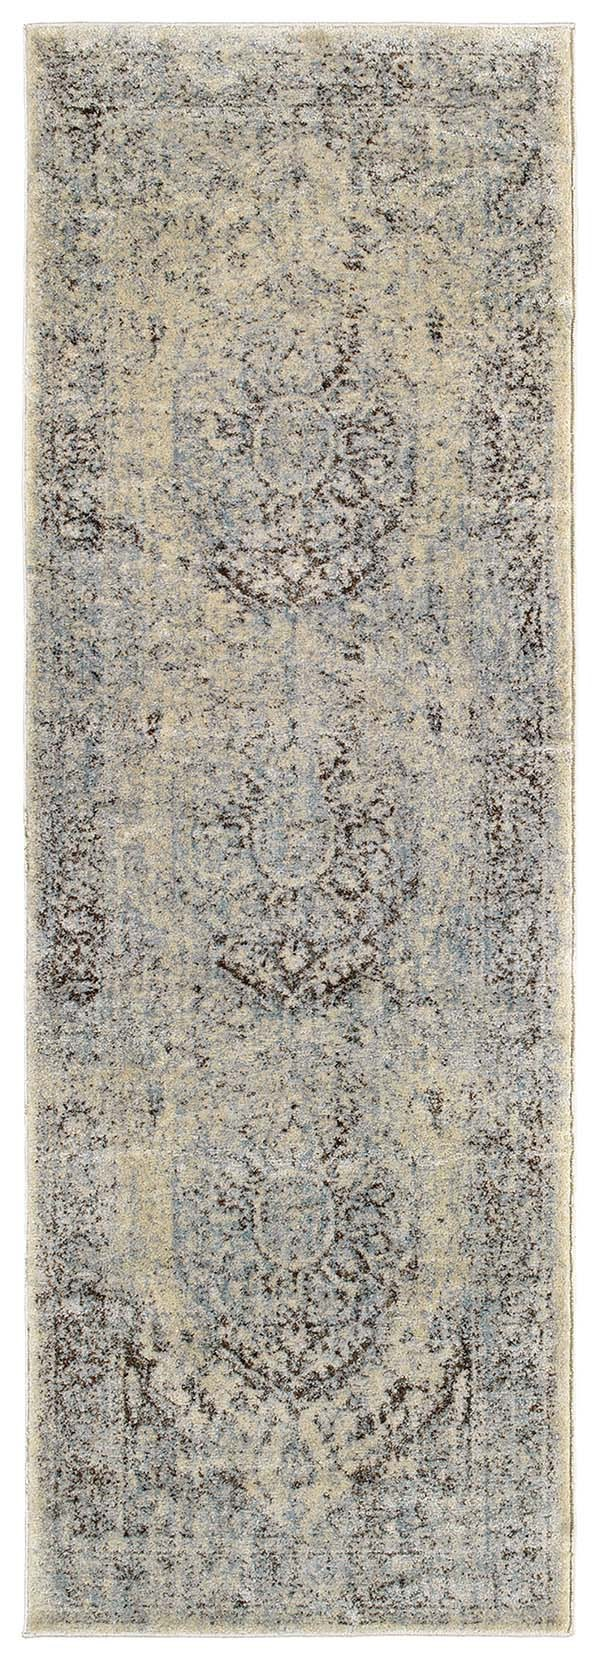 Spa (56) Vintage / Overdyed Area Rug